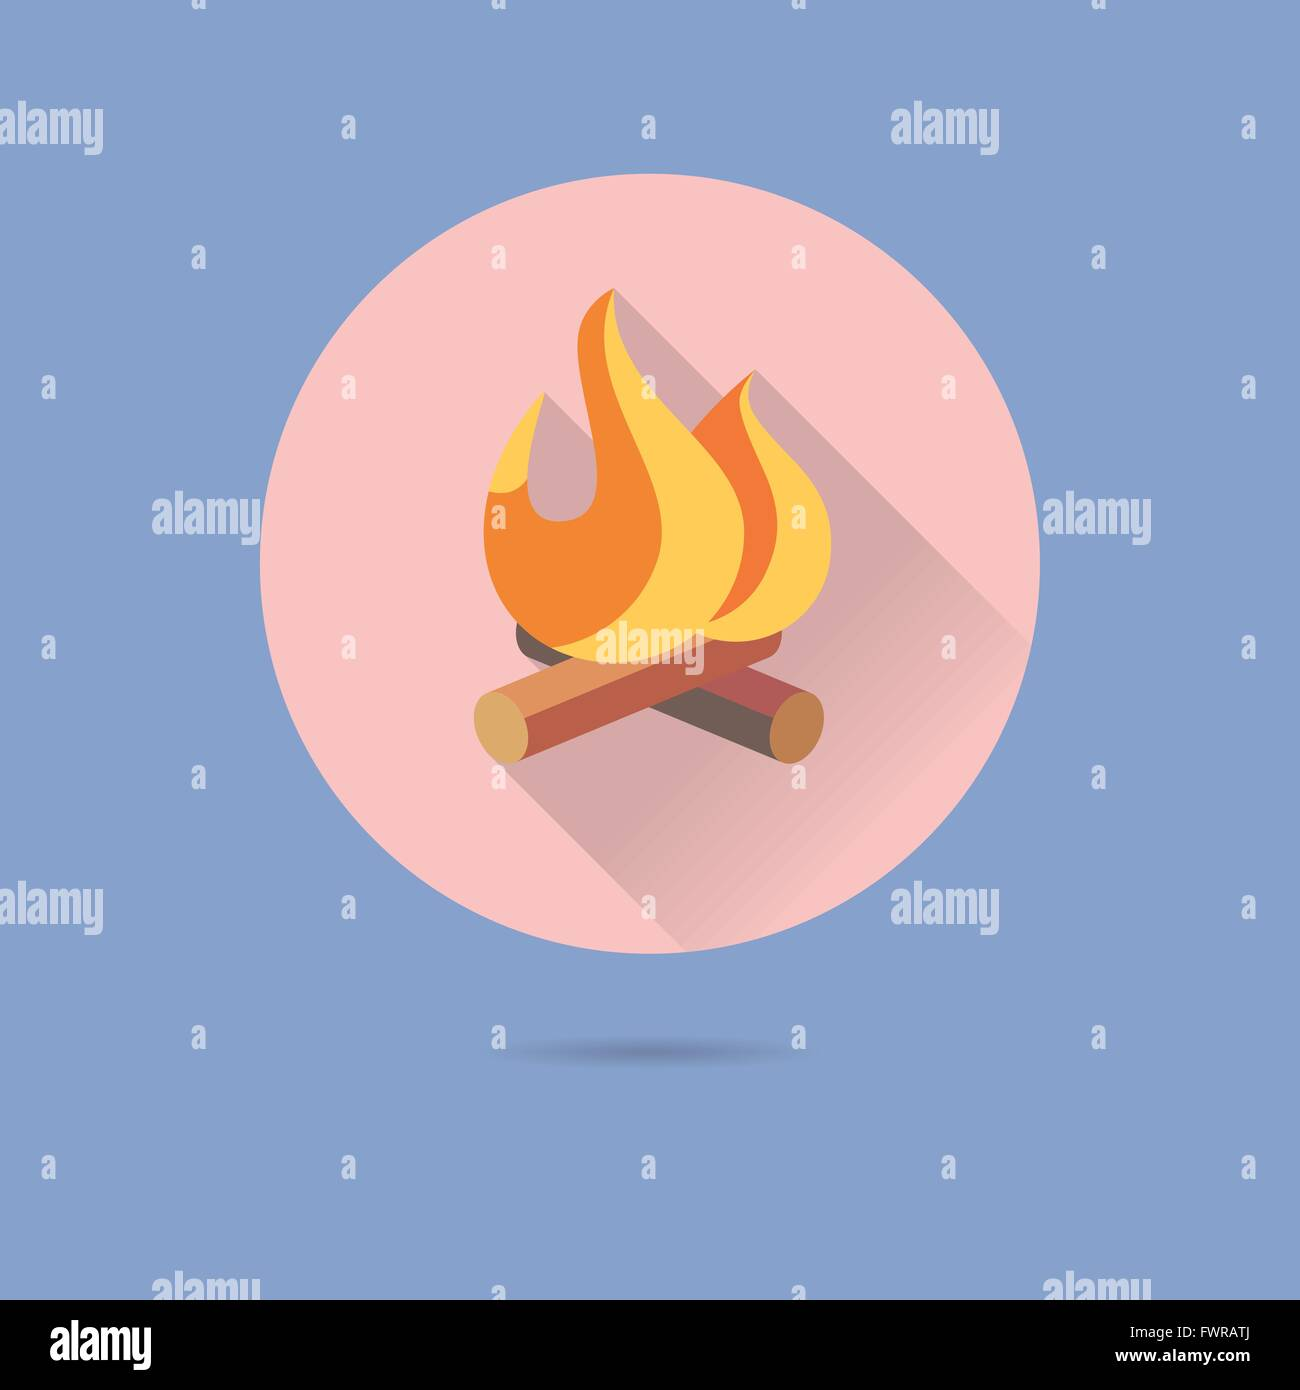 log fire flat design long shadow vector icon in circle on pastel blue background - Stock Image